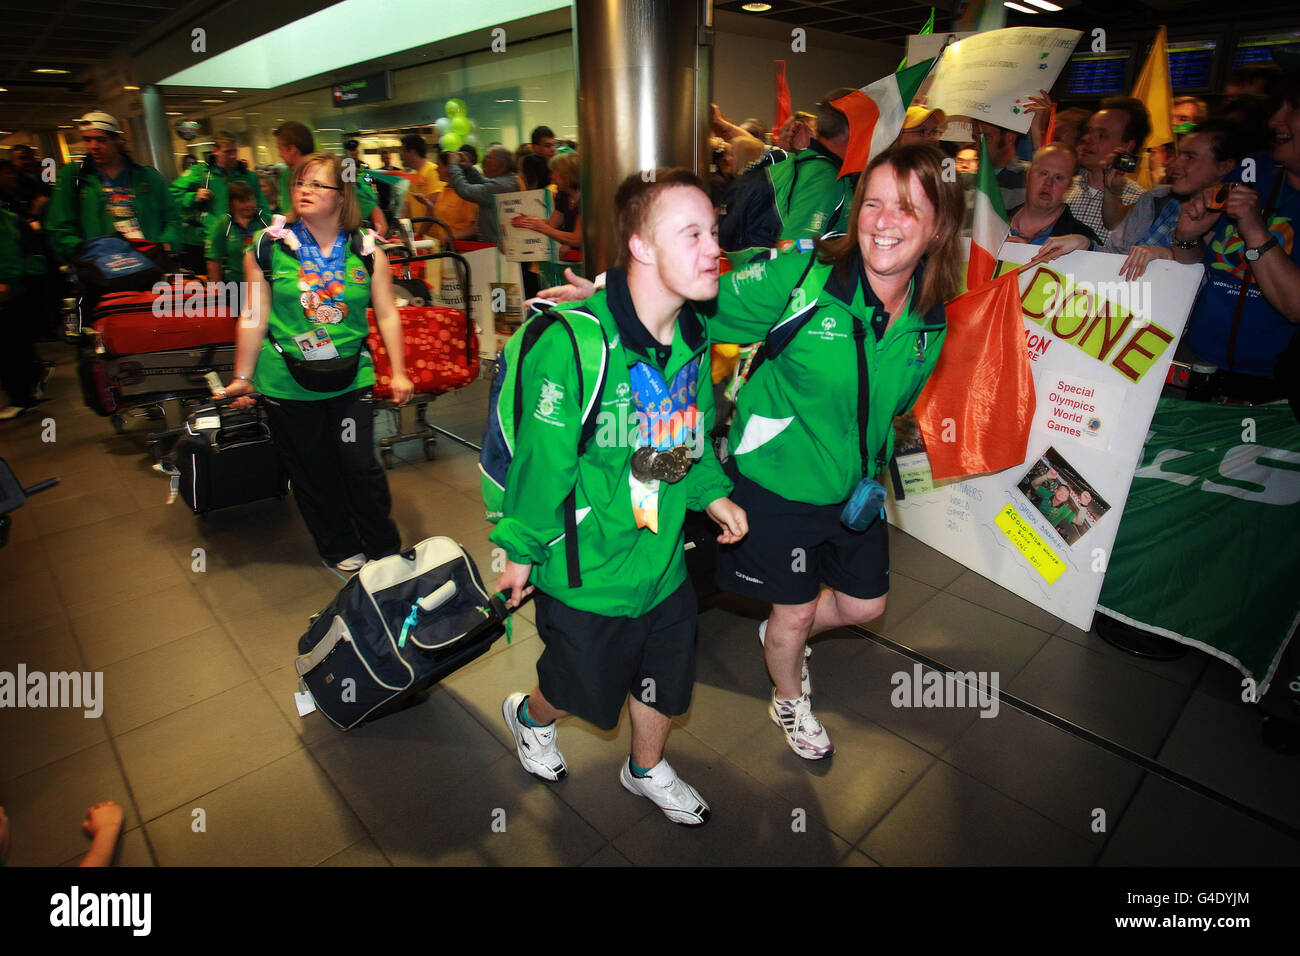 2011 Special Olympics World Summer Games - Stock Image